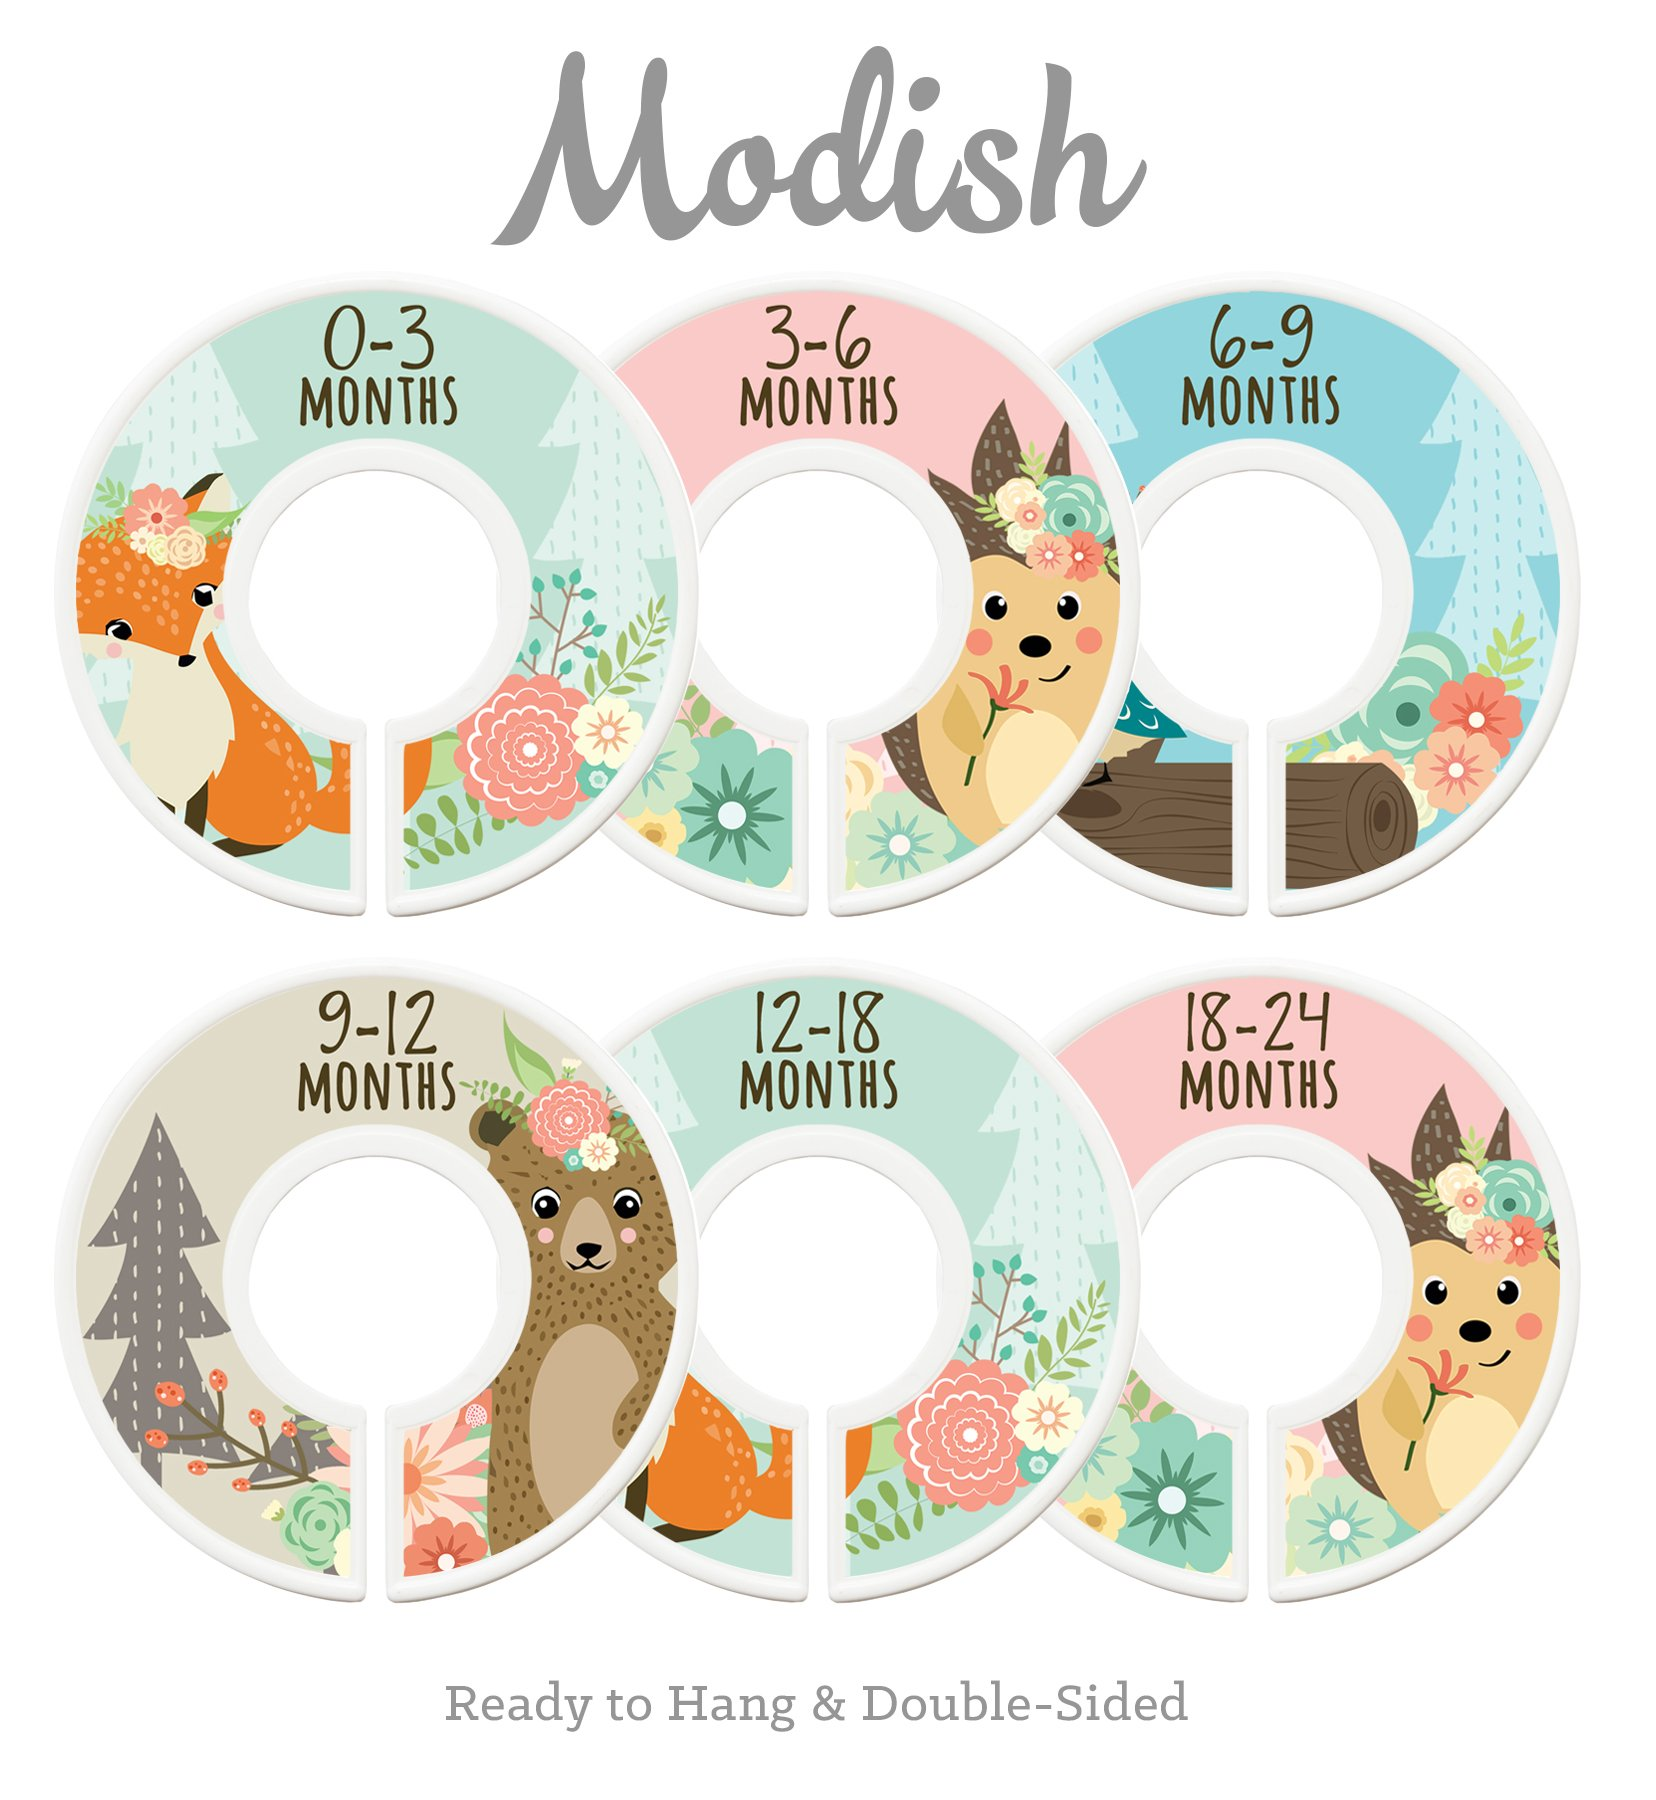 Modish Labels Baby Nursery Closet Dividers, Closet Organizers, Nursery Decor, Baby Girl, Woodland, Fox, Bear, Owl, Hedgehog by Modish Labels